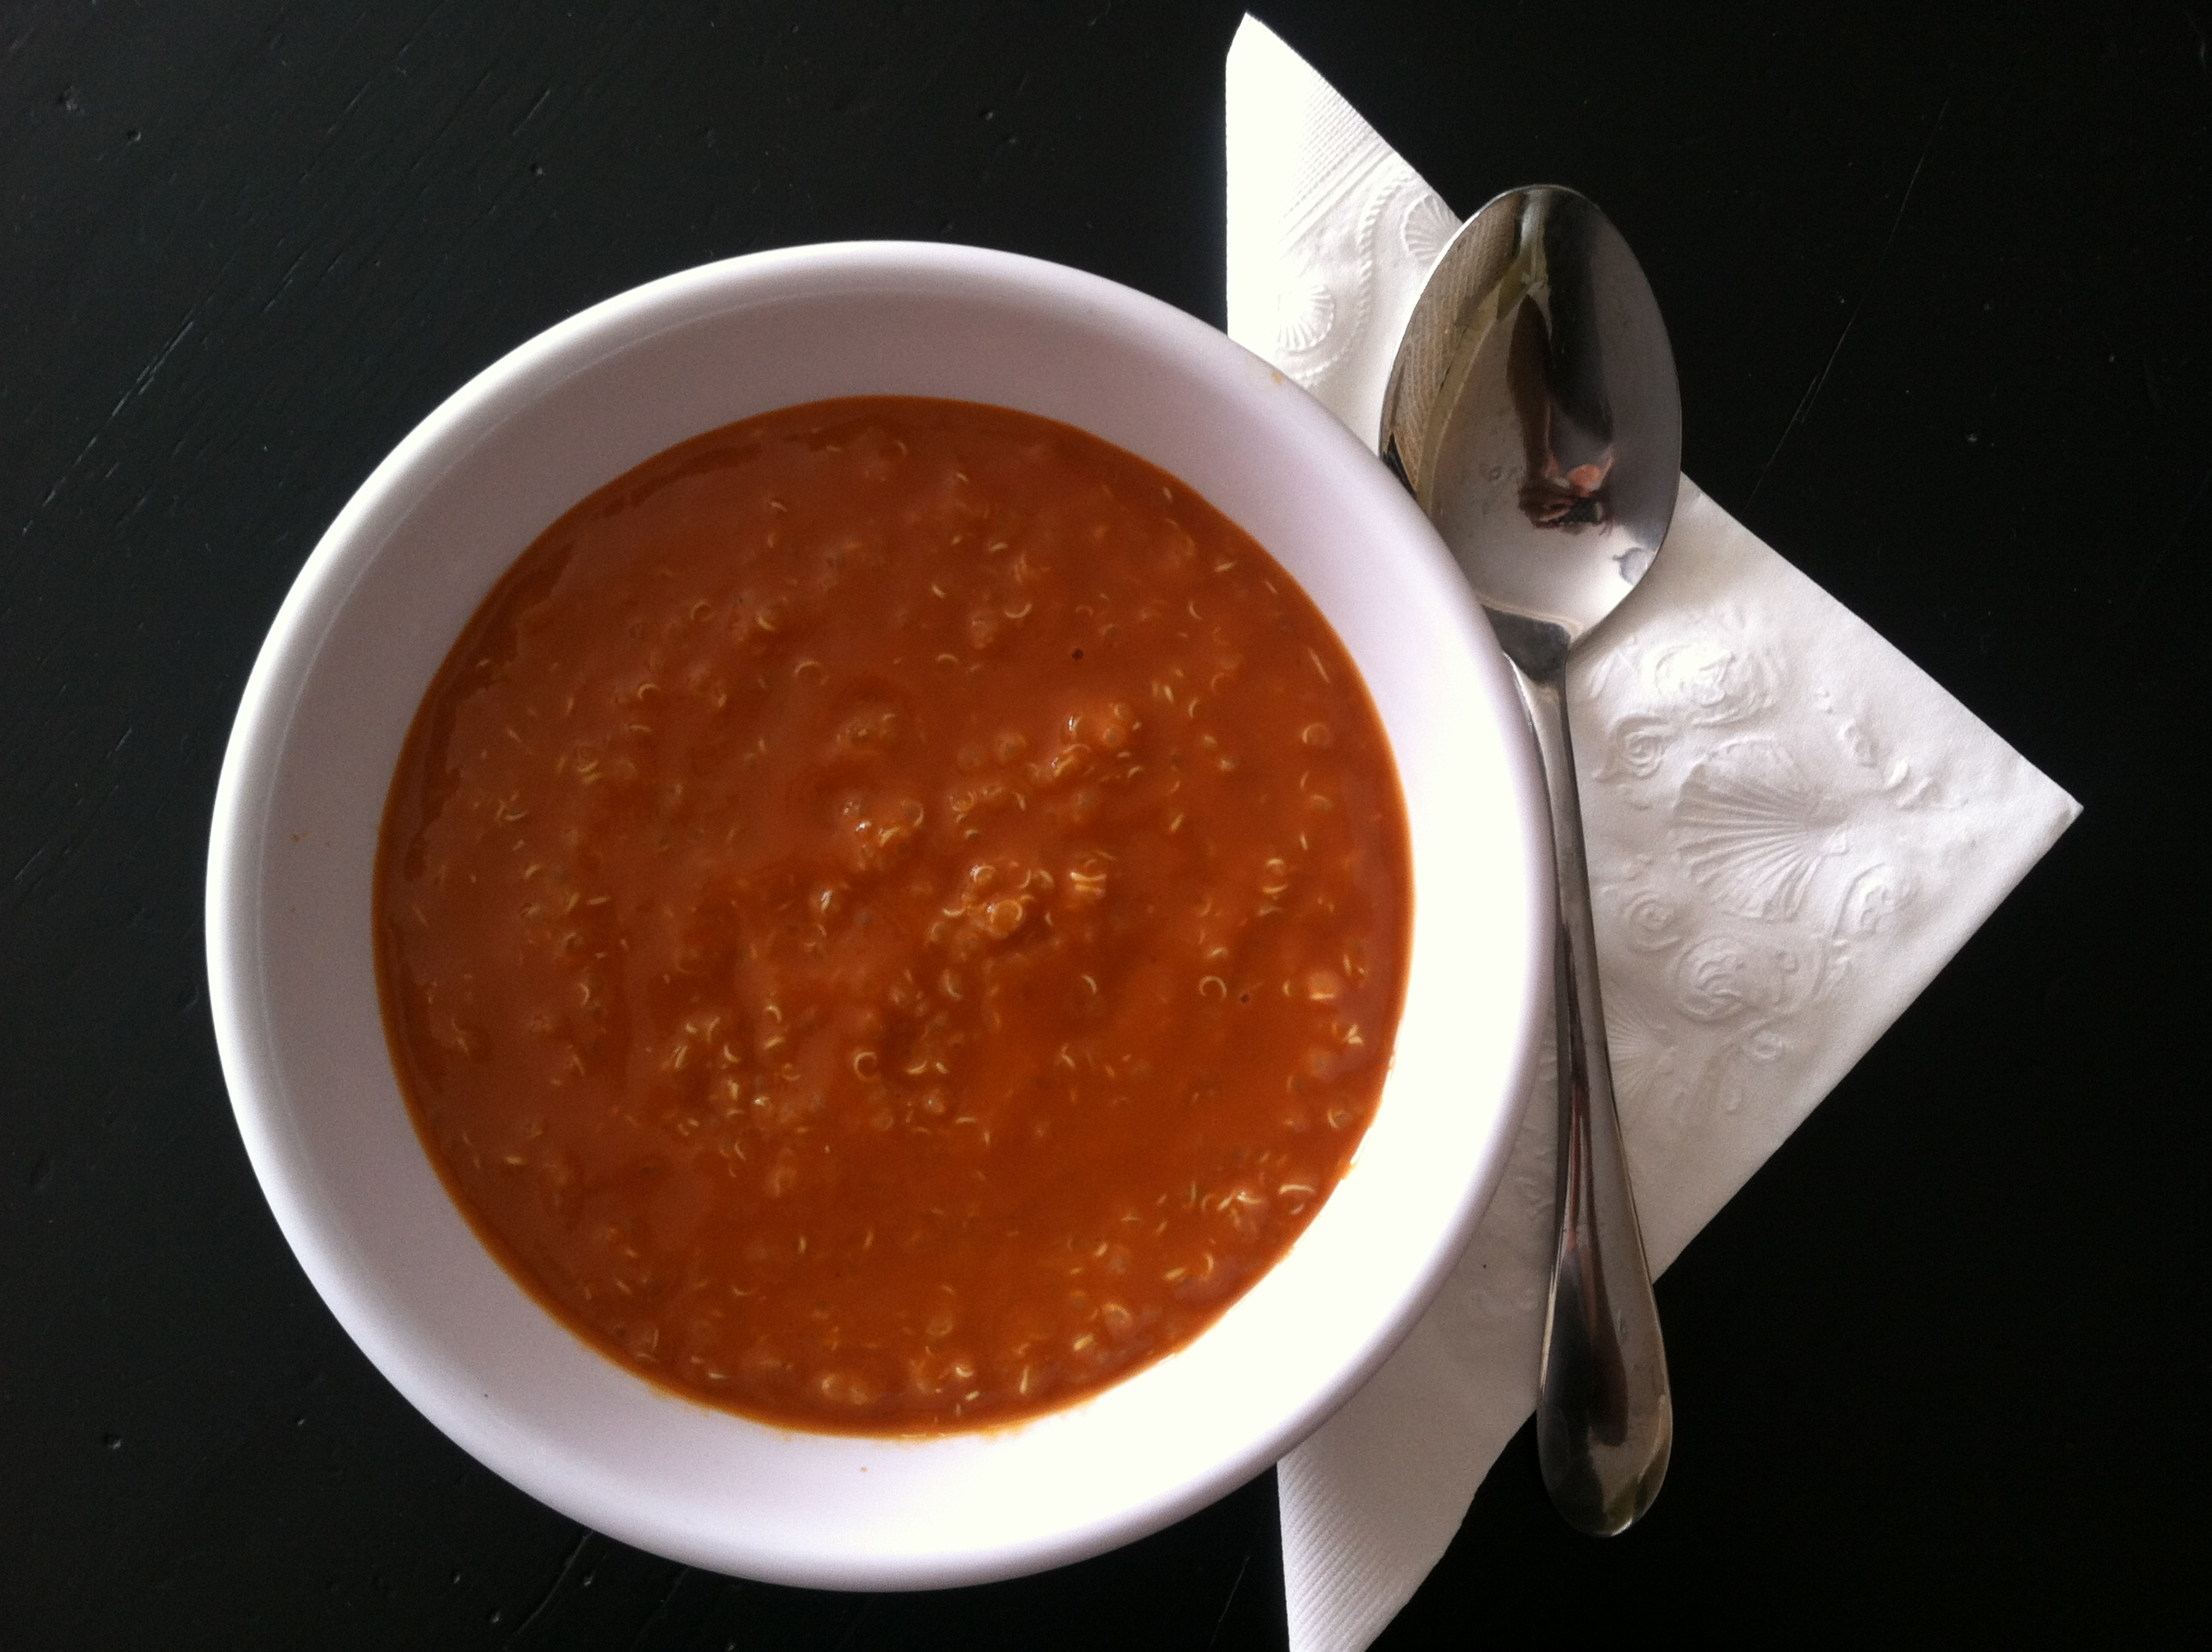 Trader Joe's Tomato and Roasted Red Pepper Soup with added Quinoa